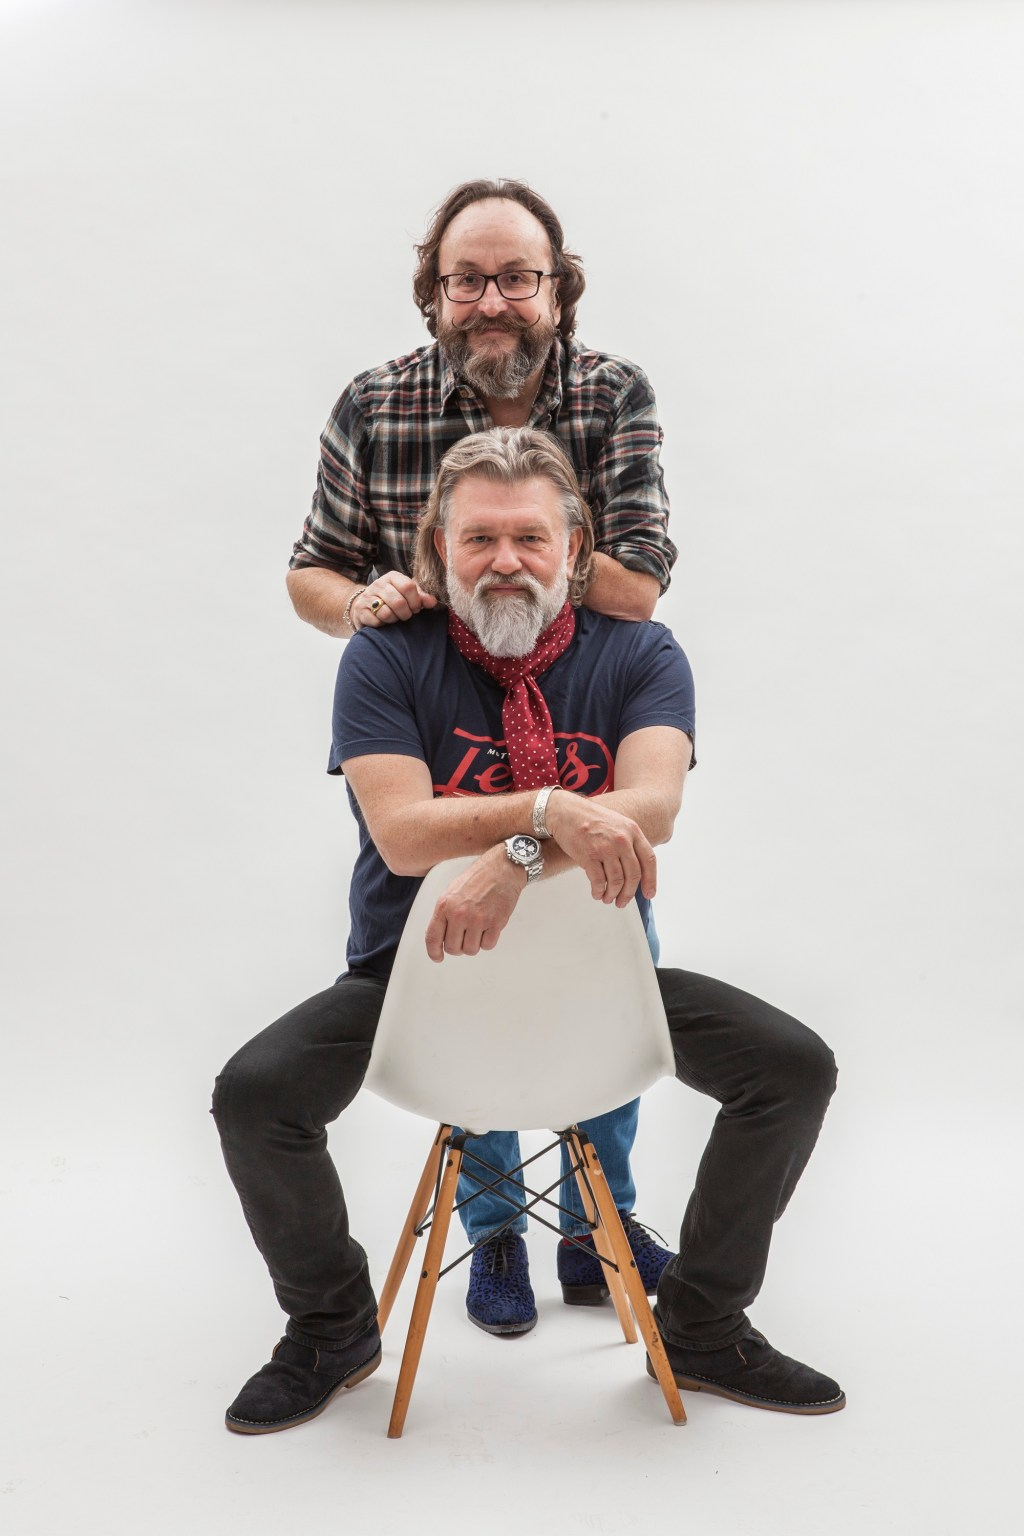 The hairy bikers go north starts thursday 23rd september on bbc two! THE HAIRY BIKERS - JOIN DAVE AND SI FOR AN EVENING OF FOOD ...